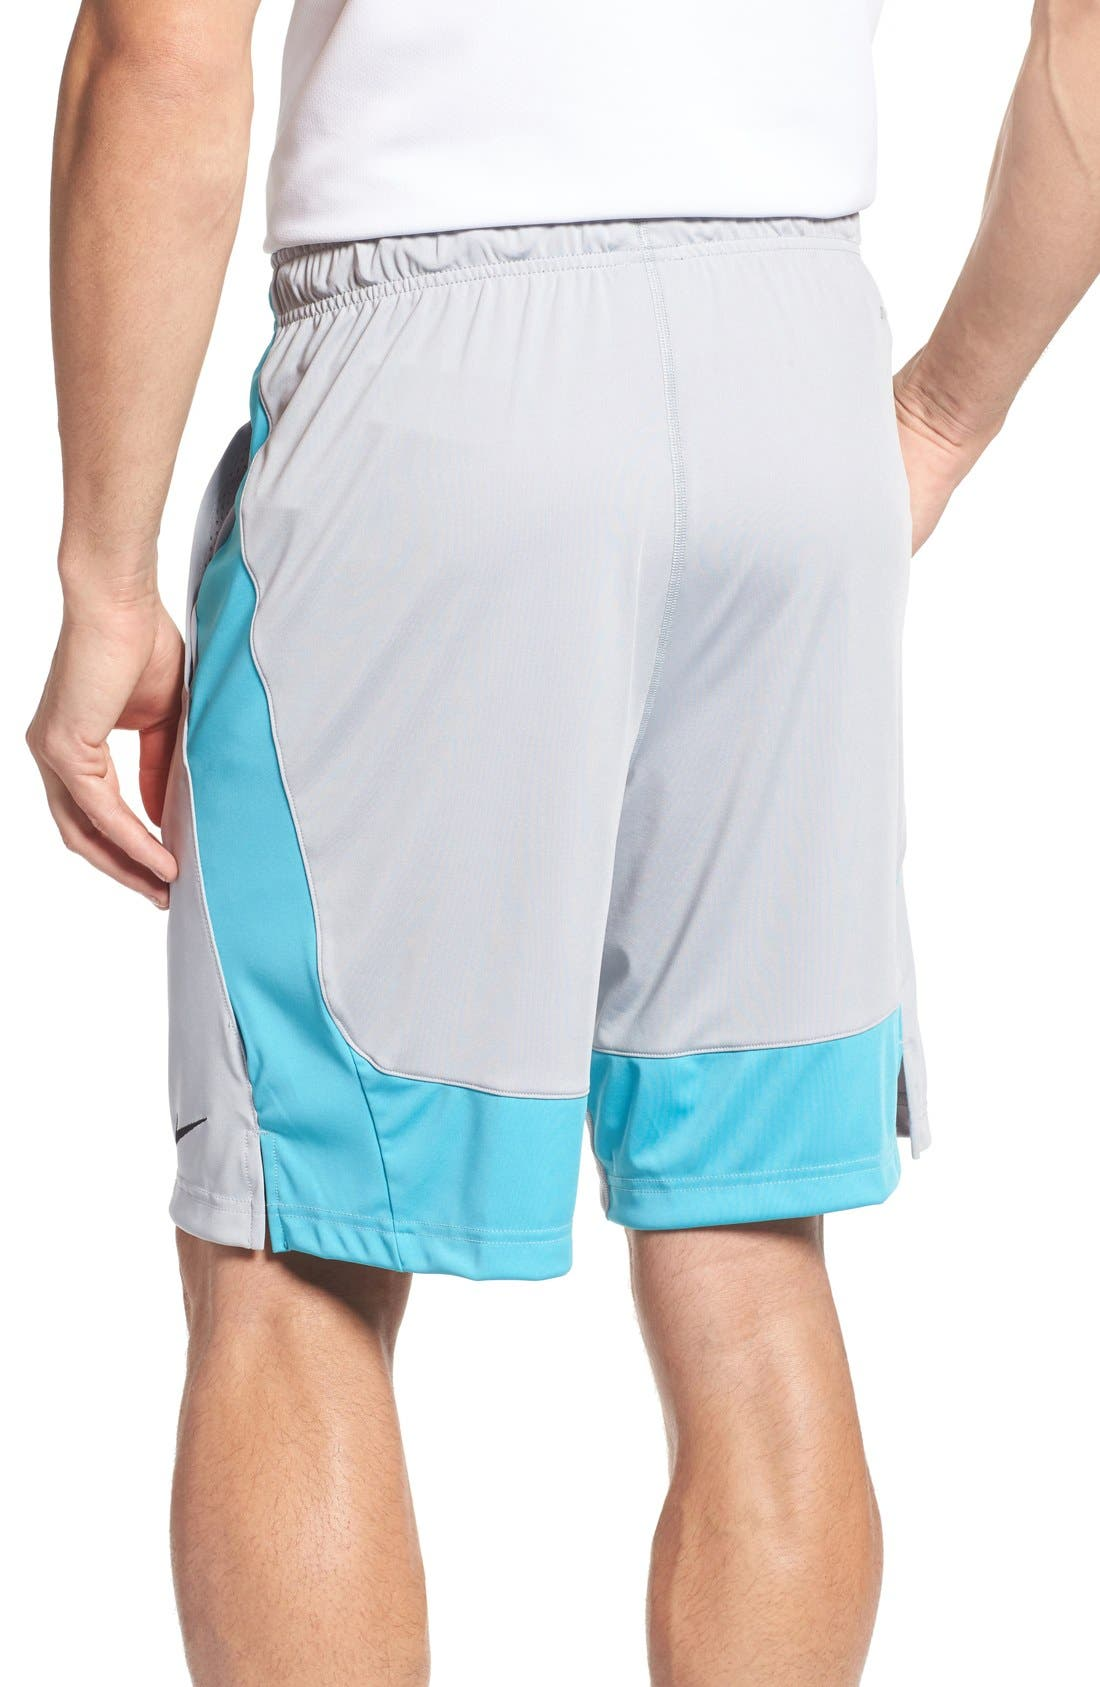 'Fly' Dri-FIT Training Shorts,                             Alternate thumbnail 50, color,